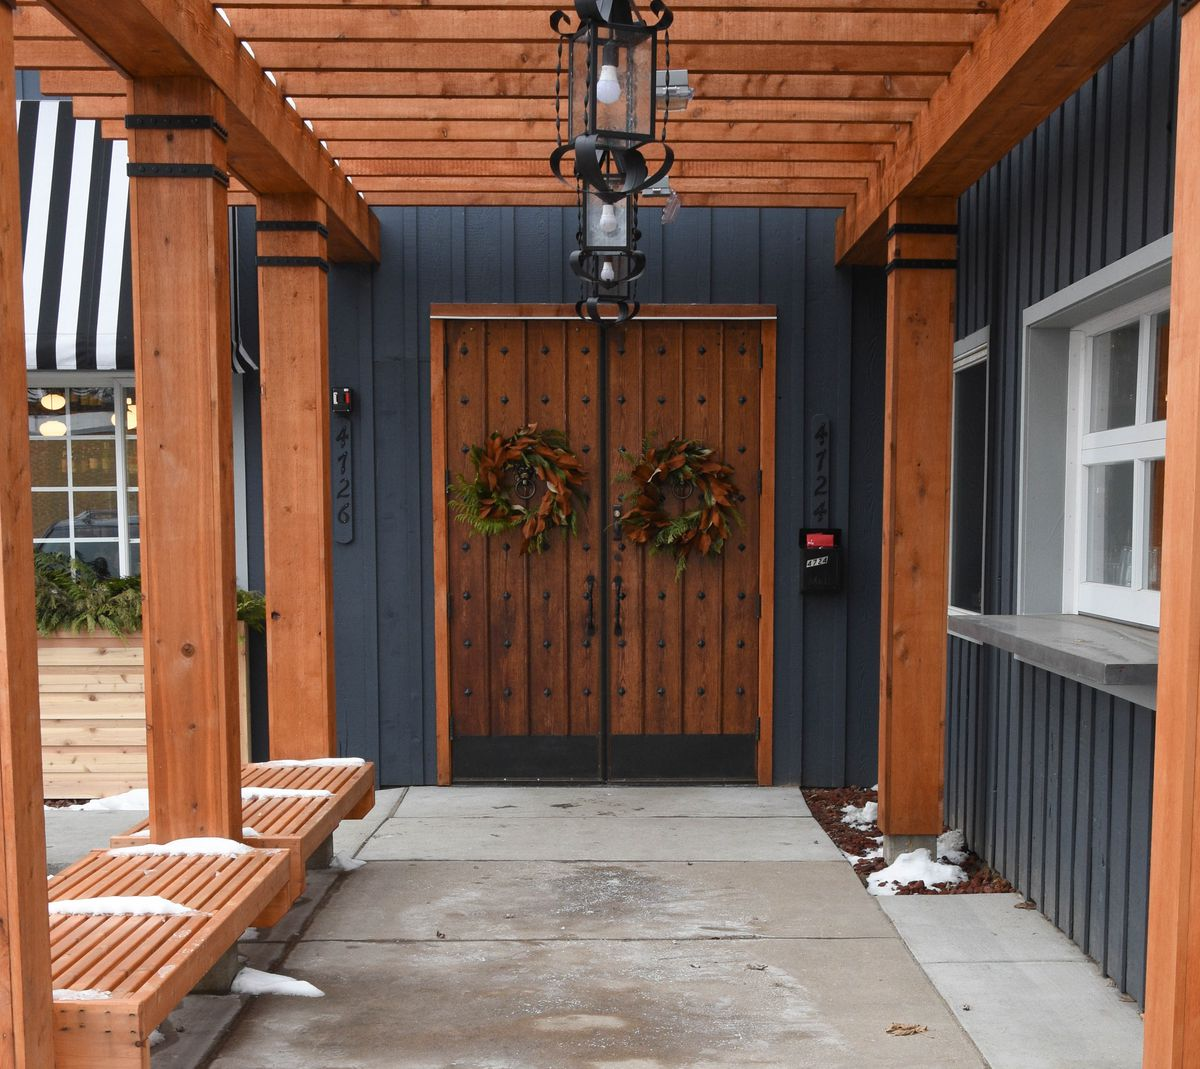 The double wood doors with a Christmas wreath at Italian Eatery